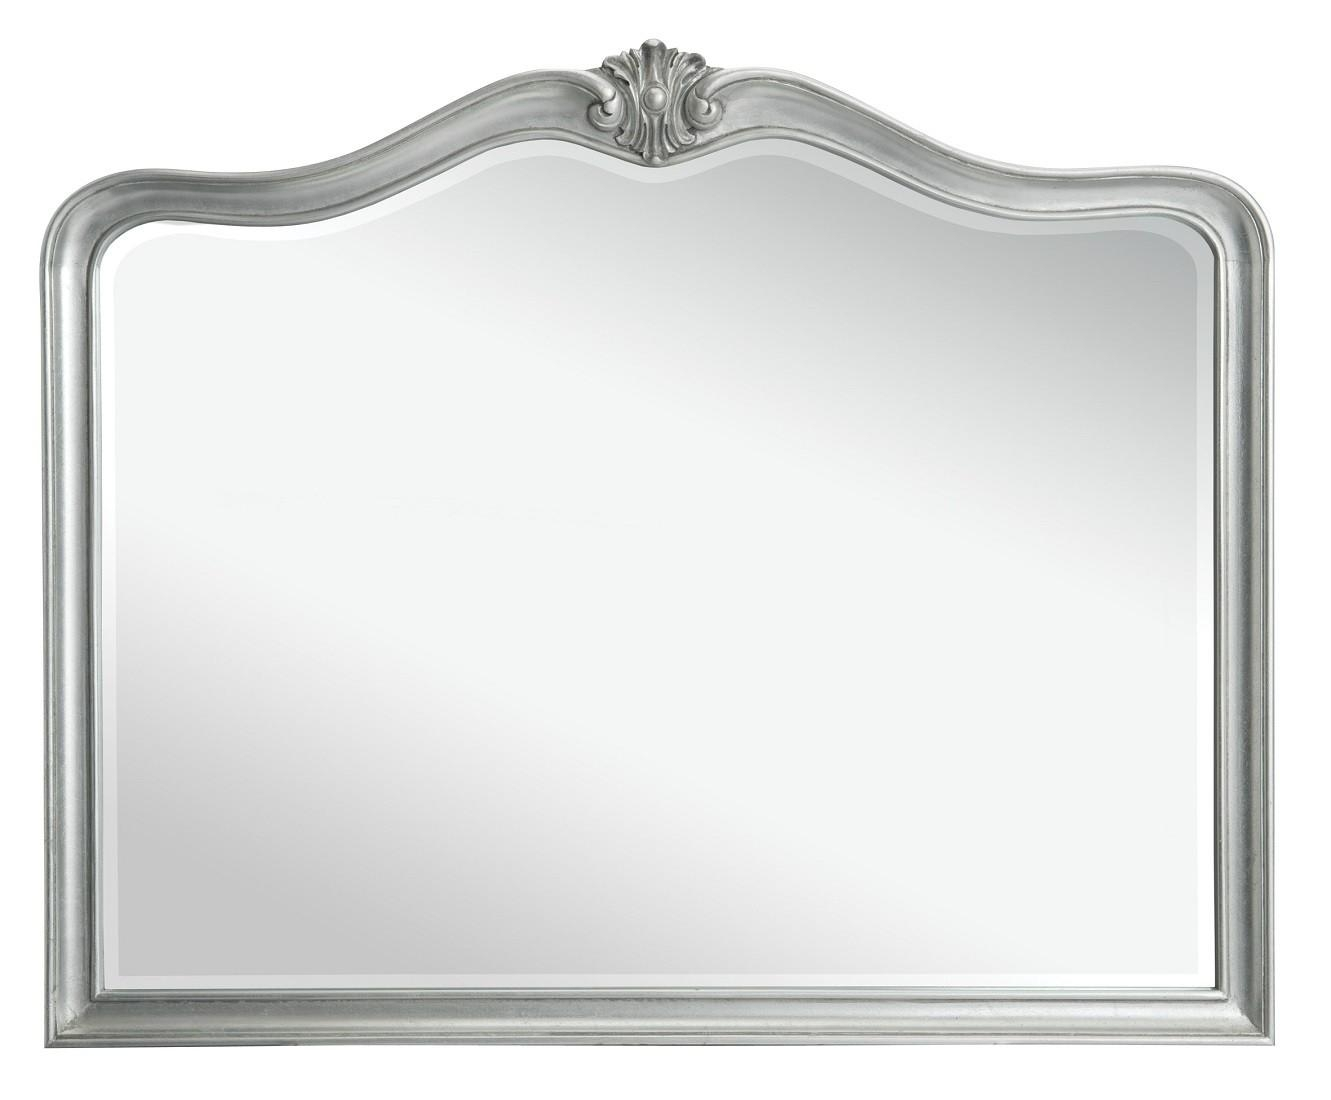 Louis French Silver Leaf Wall Mirror | Oak Furniture Uk With Regard To French Wall Mirrors (Image 12 of 20)